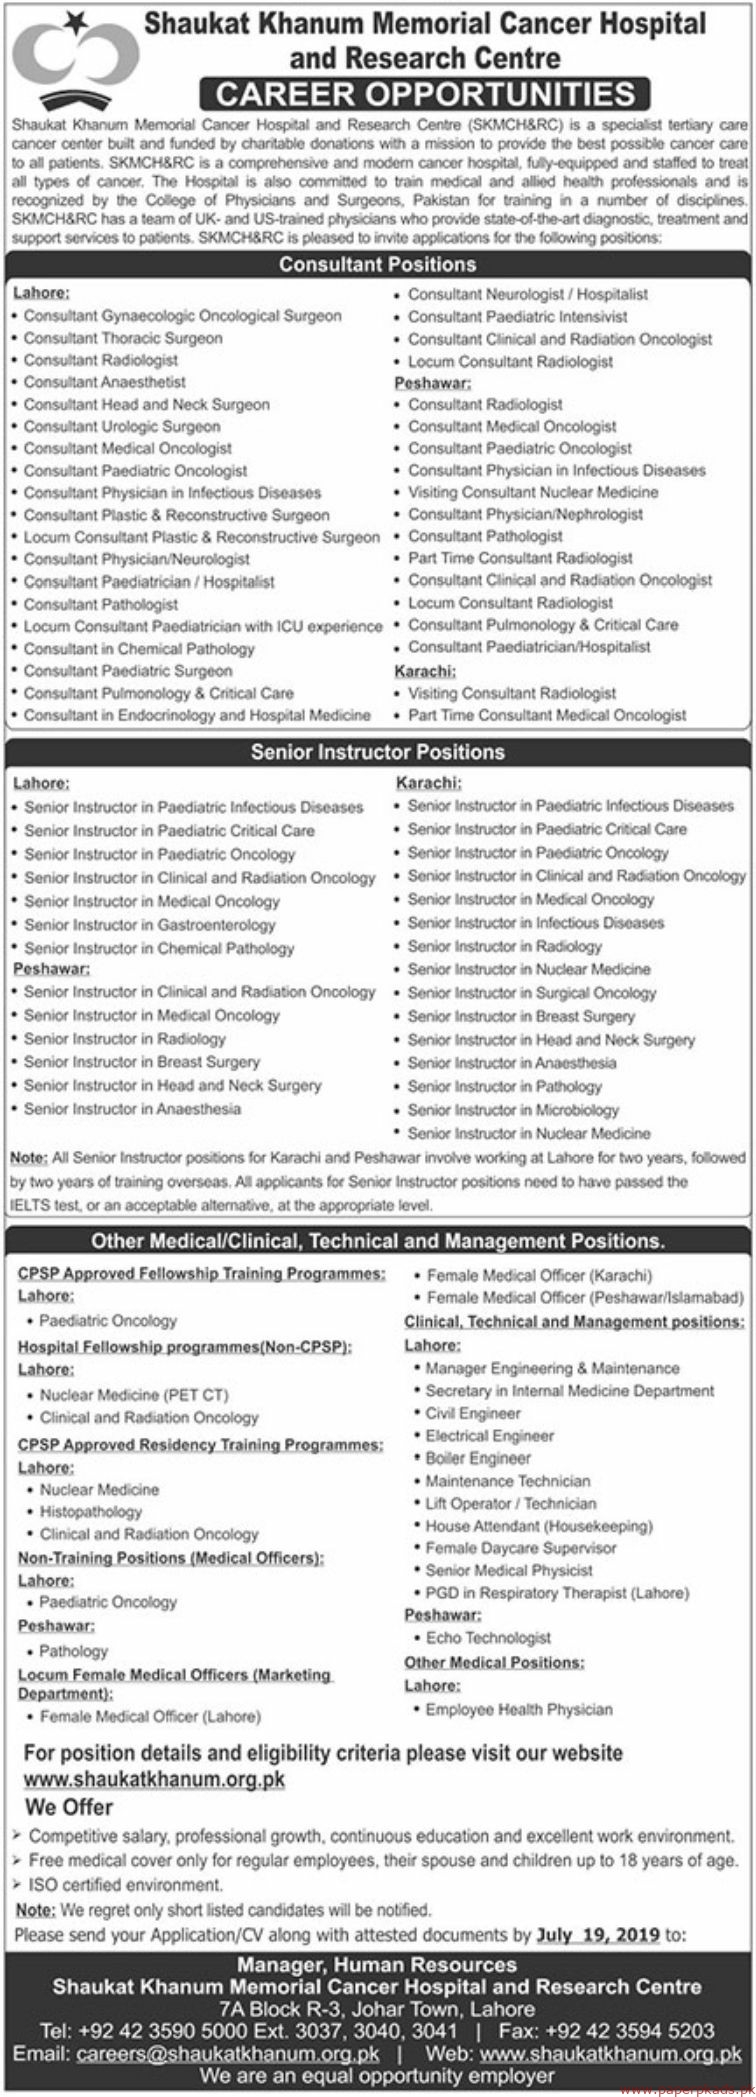 Shaukat Khanum Memorial Cancer Hospital and Research Centre SKMCH&RC Jobs 2019 Latest